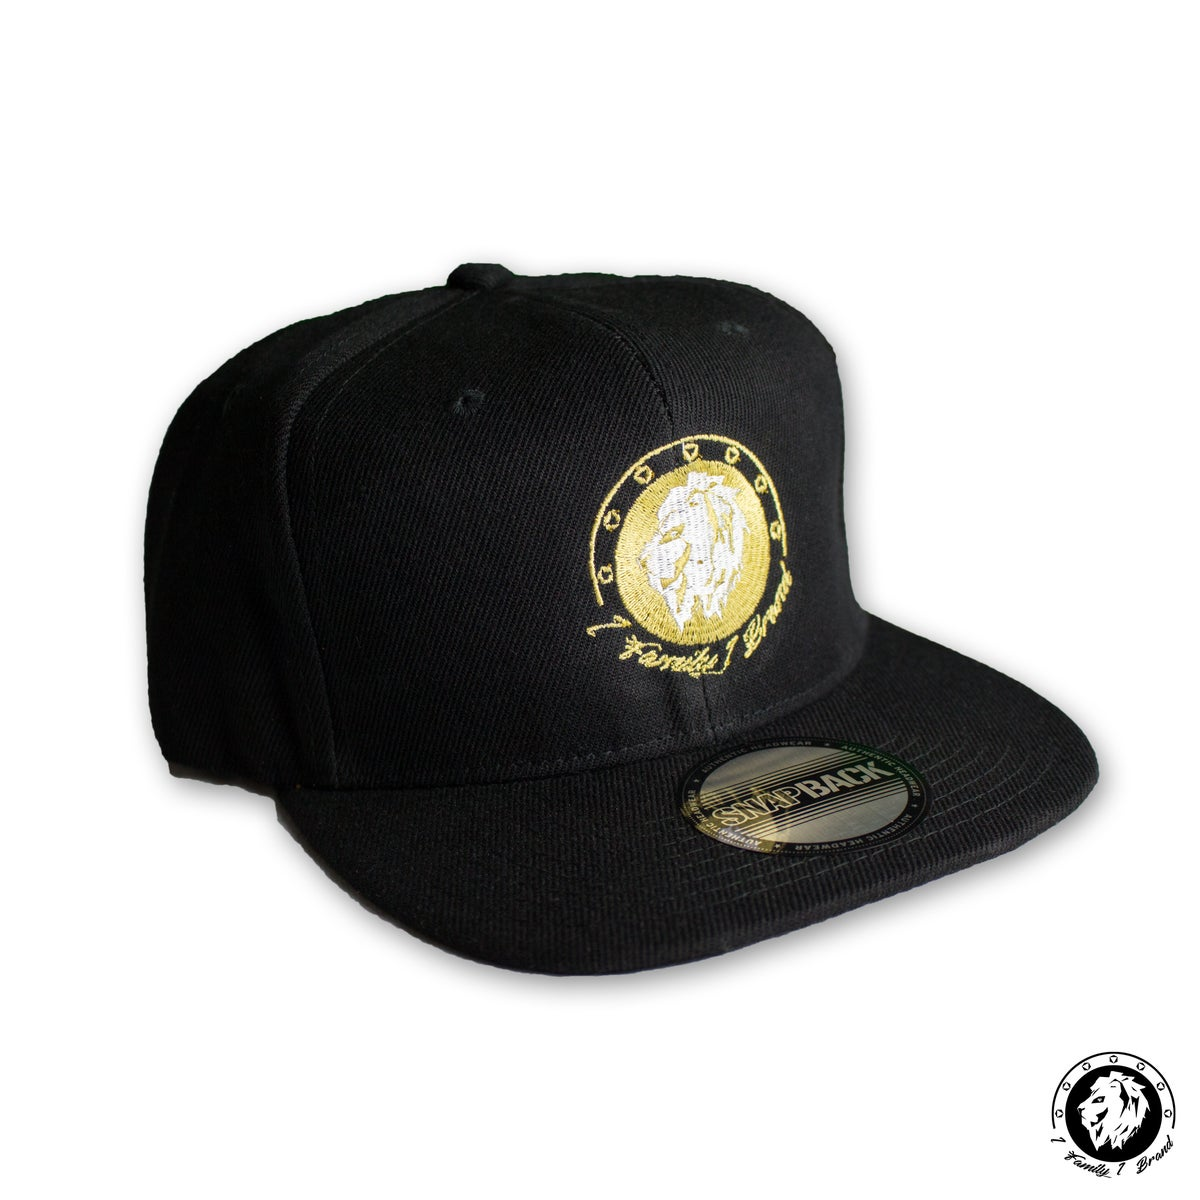 Image of Snapback (Black/White/Gold)